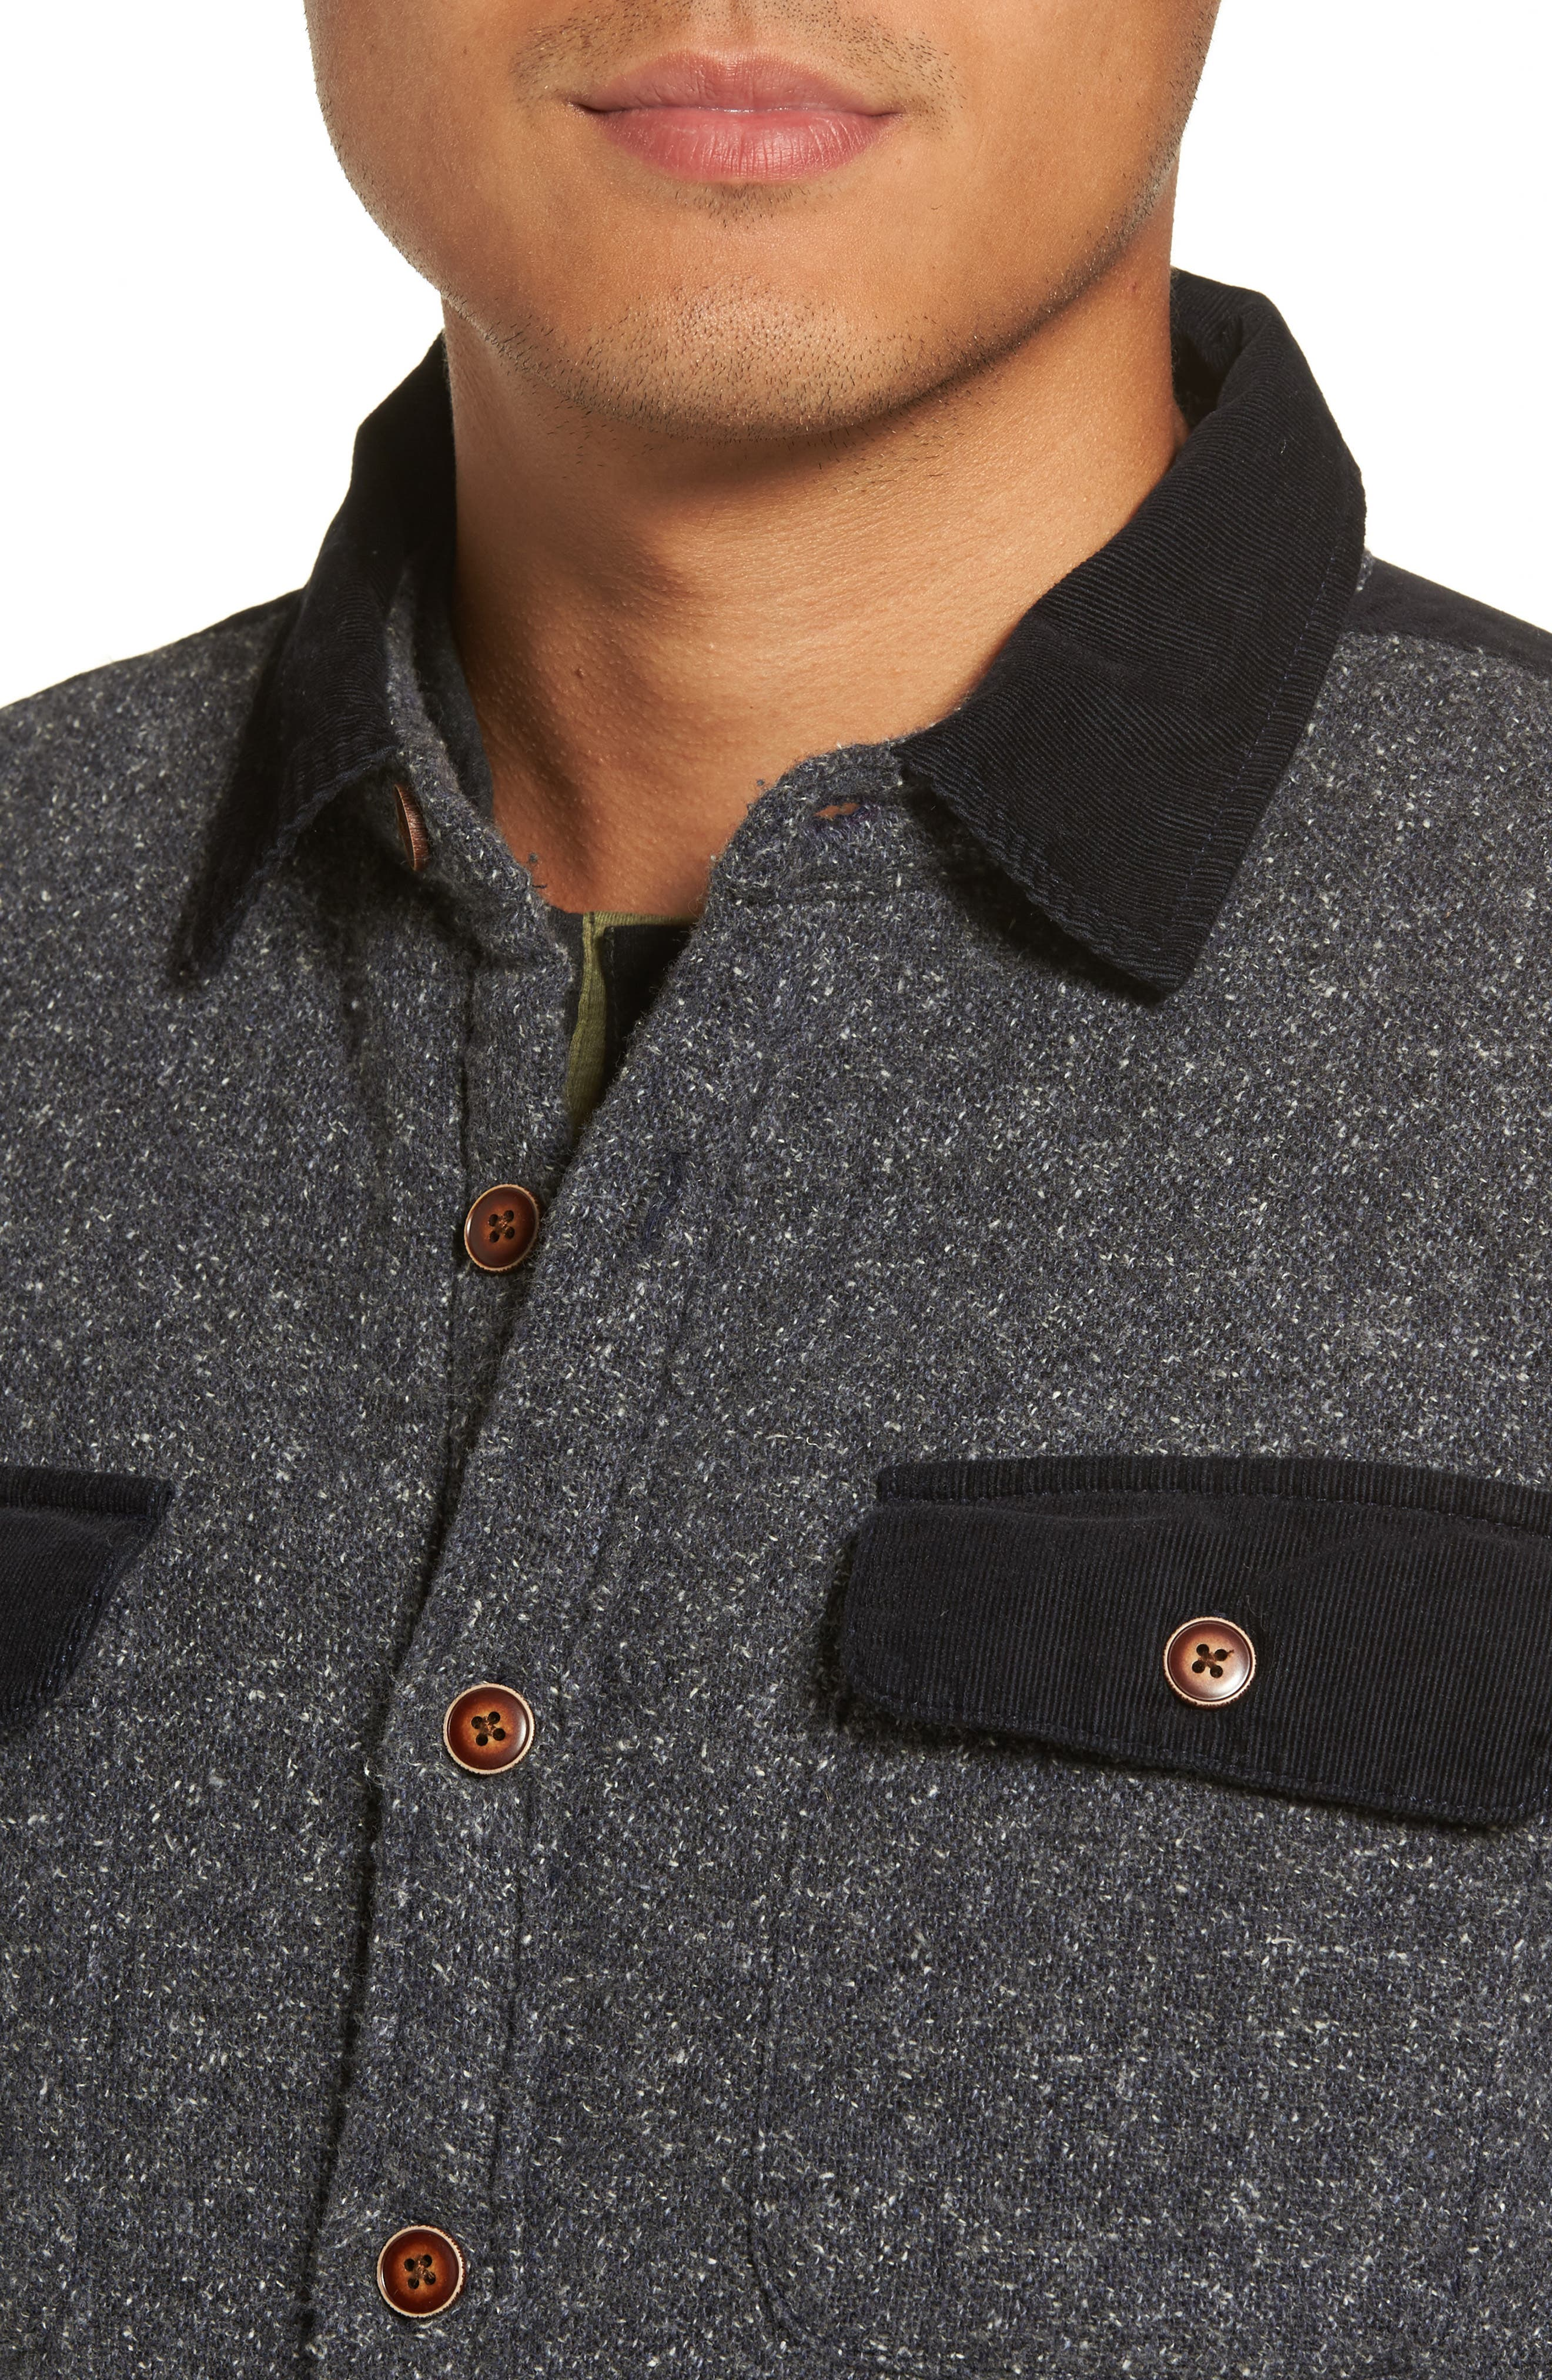 CPO Shirt Jacket,                             Alternate thumbnail 4, color,                             022